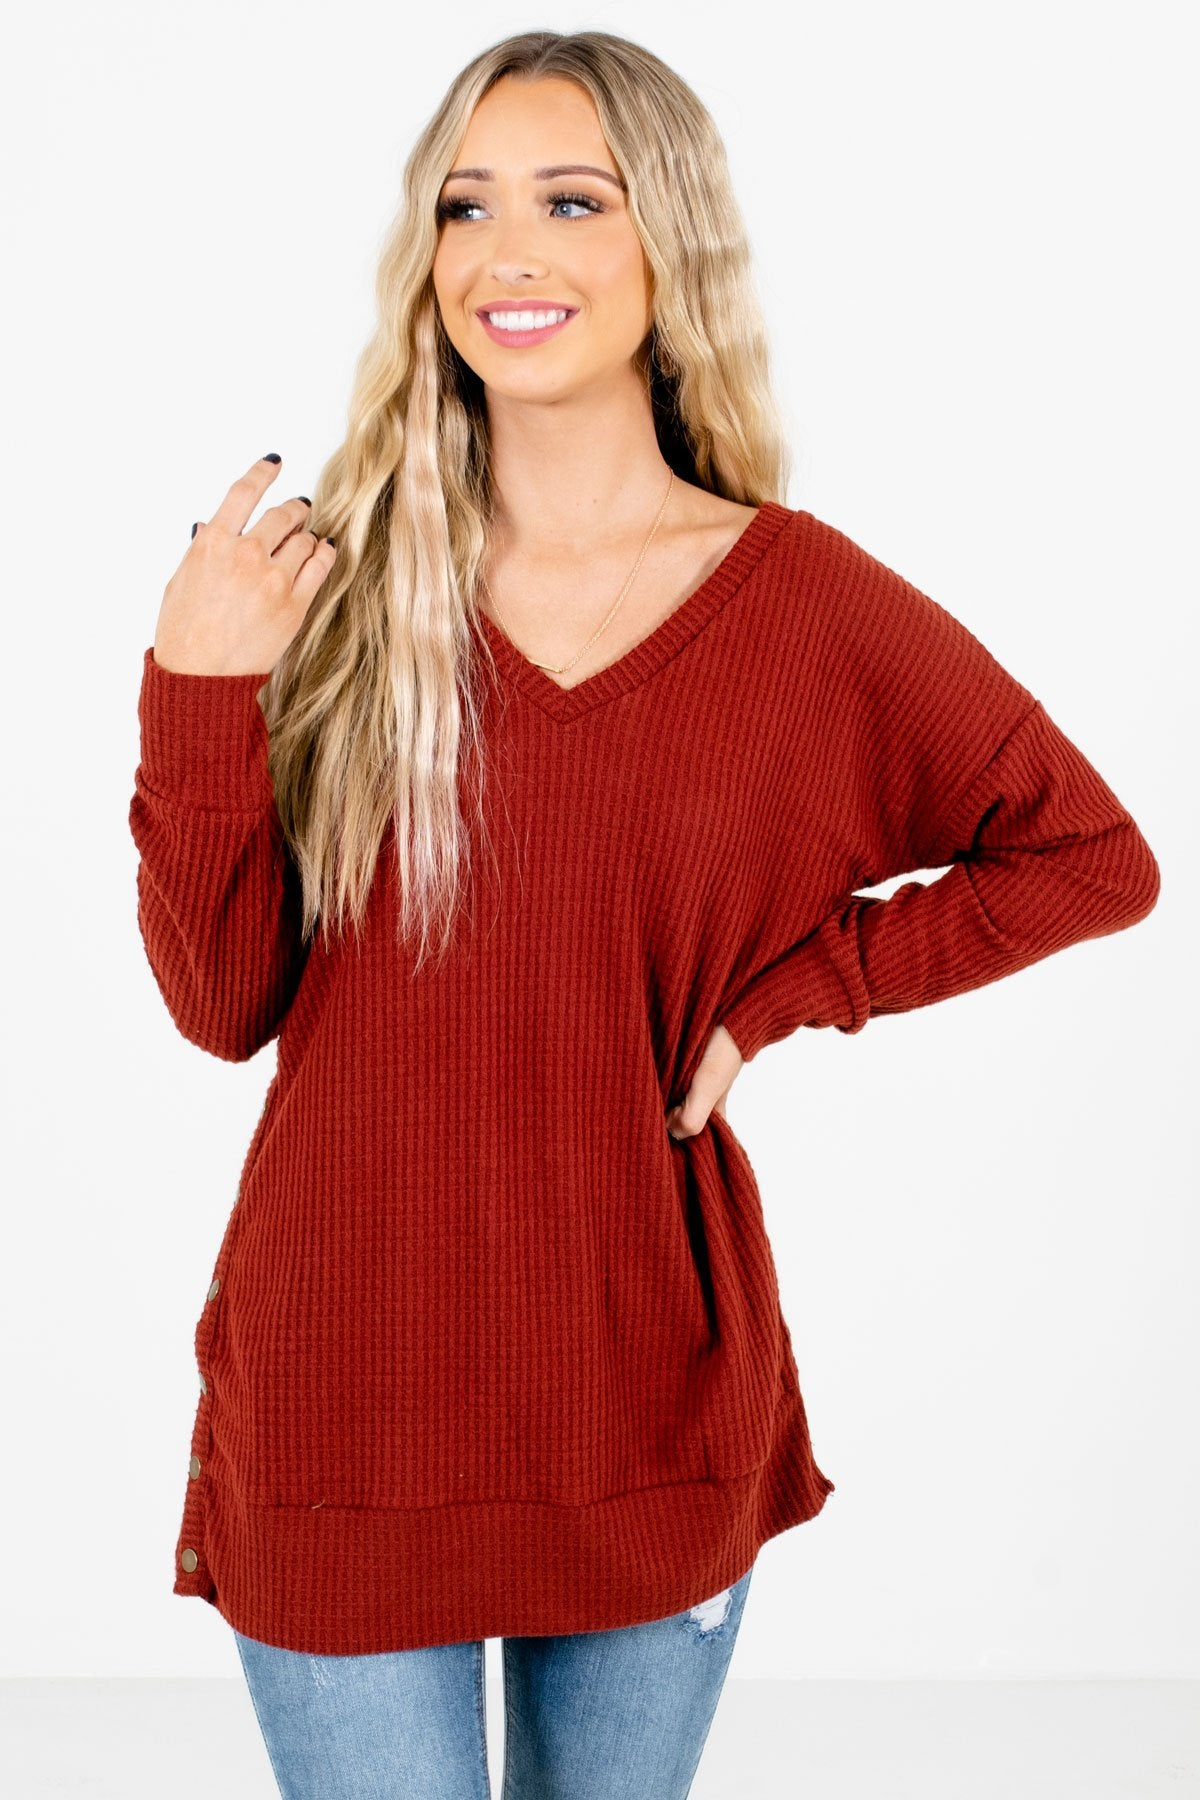 Rust Red High-Quality Waffle Knit Boutique Tops for Women